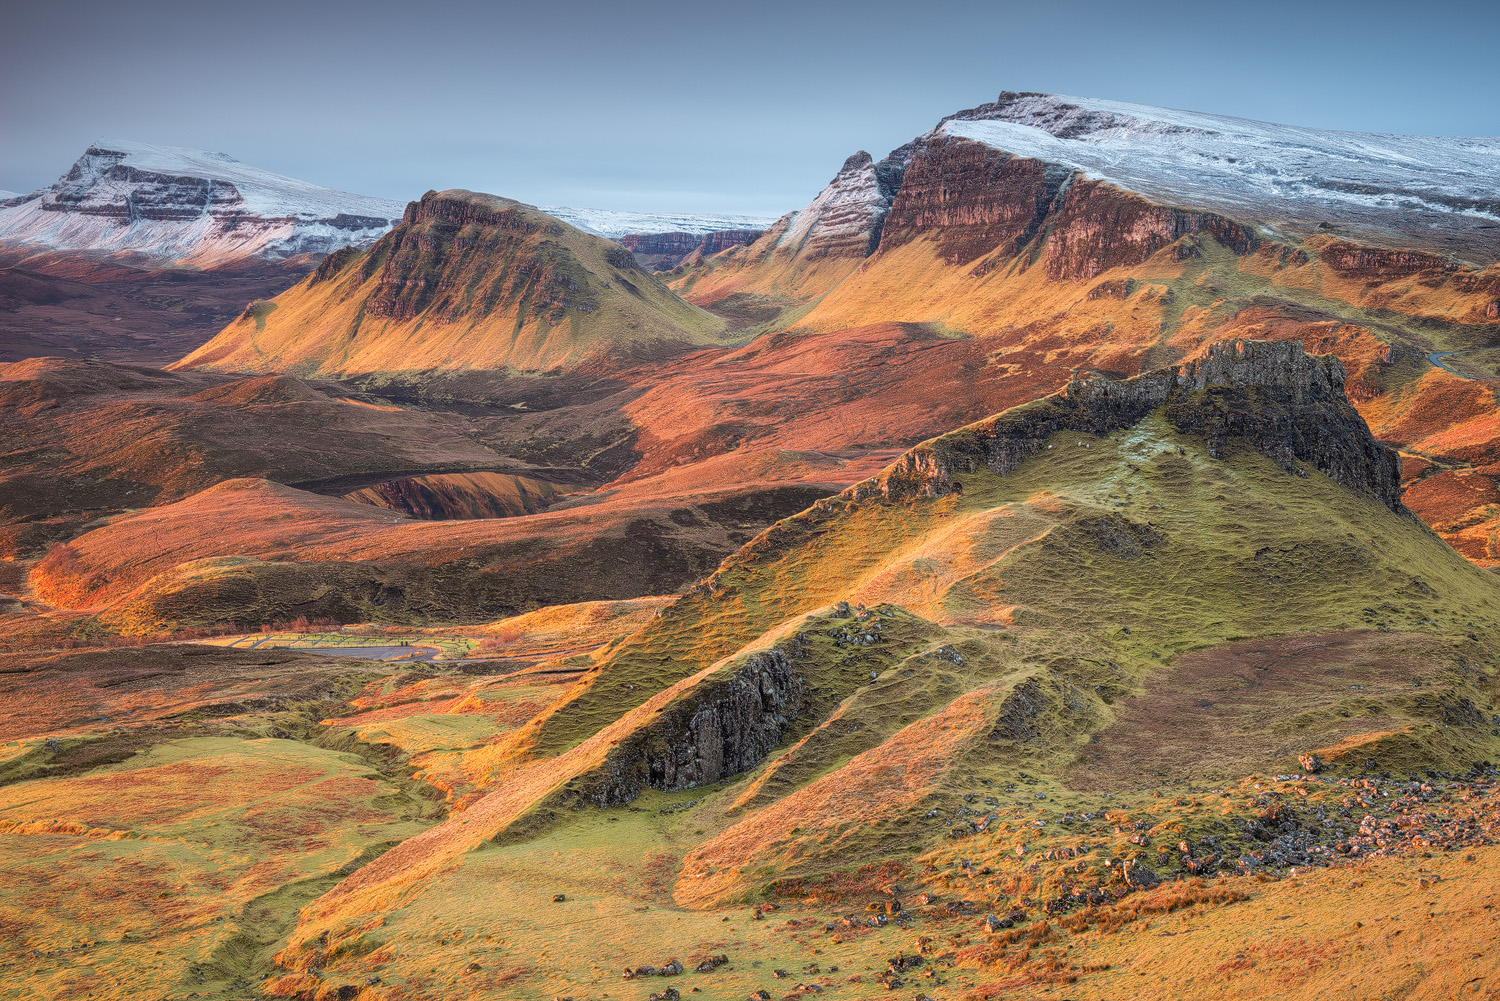 The Quiraing, Trotternish peninsula on the Isle of Skye (Scotland)